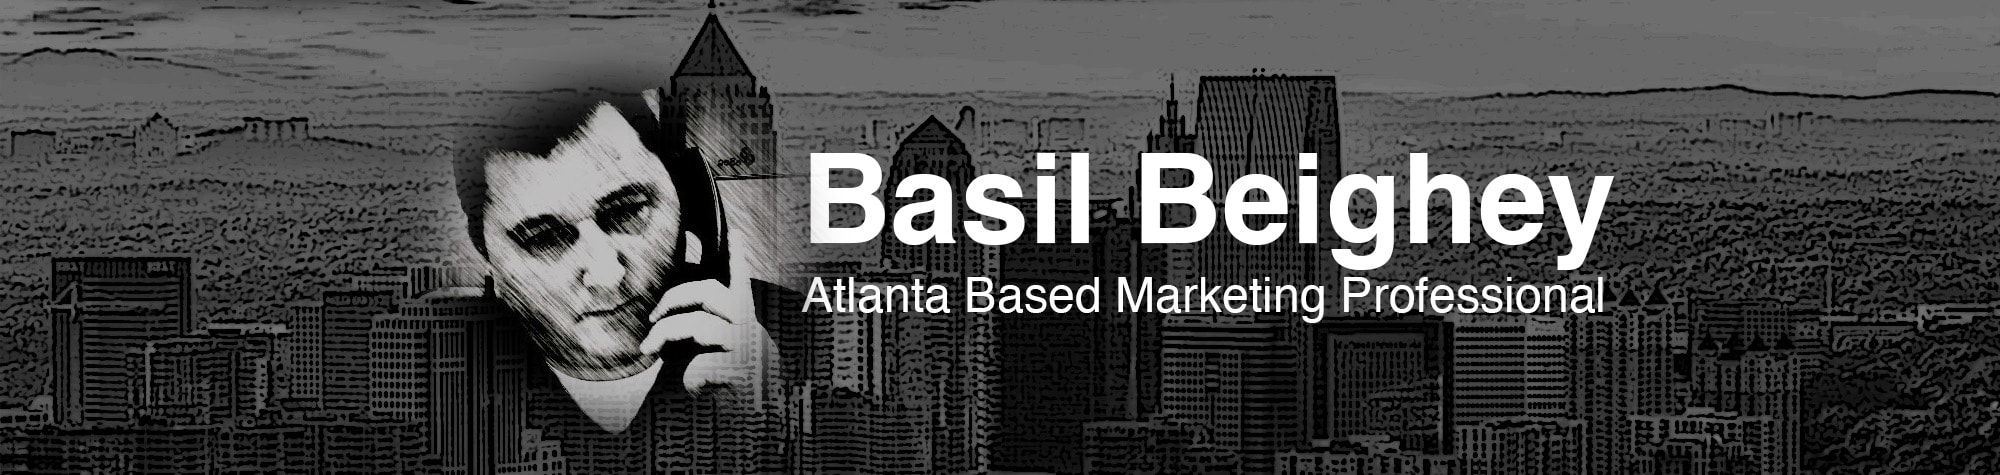 Basil Beighey Atlanta Area Marketing Professional